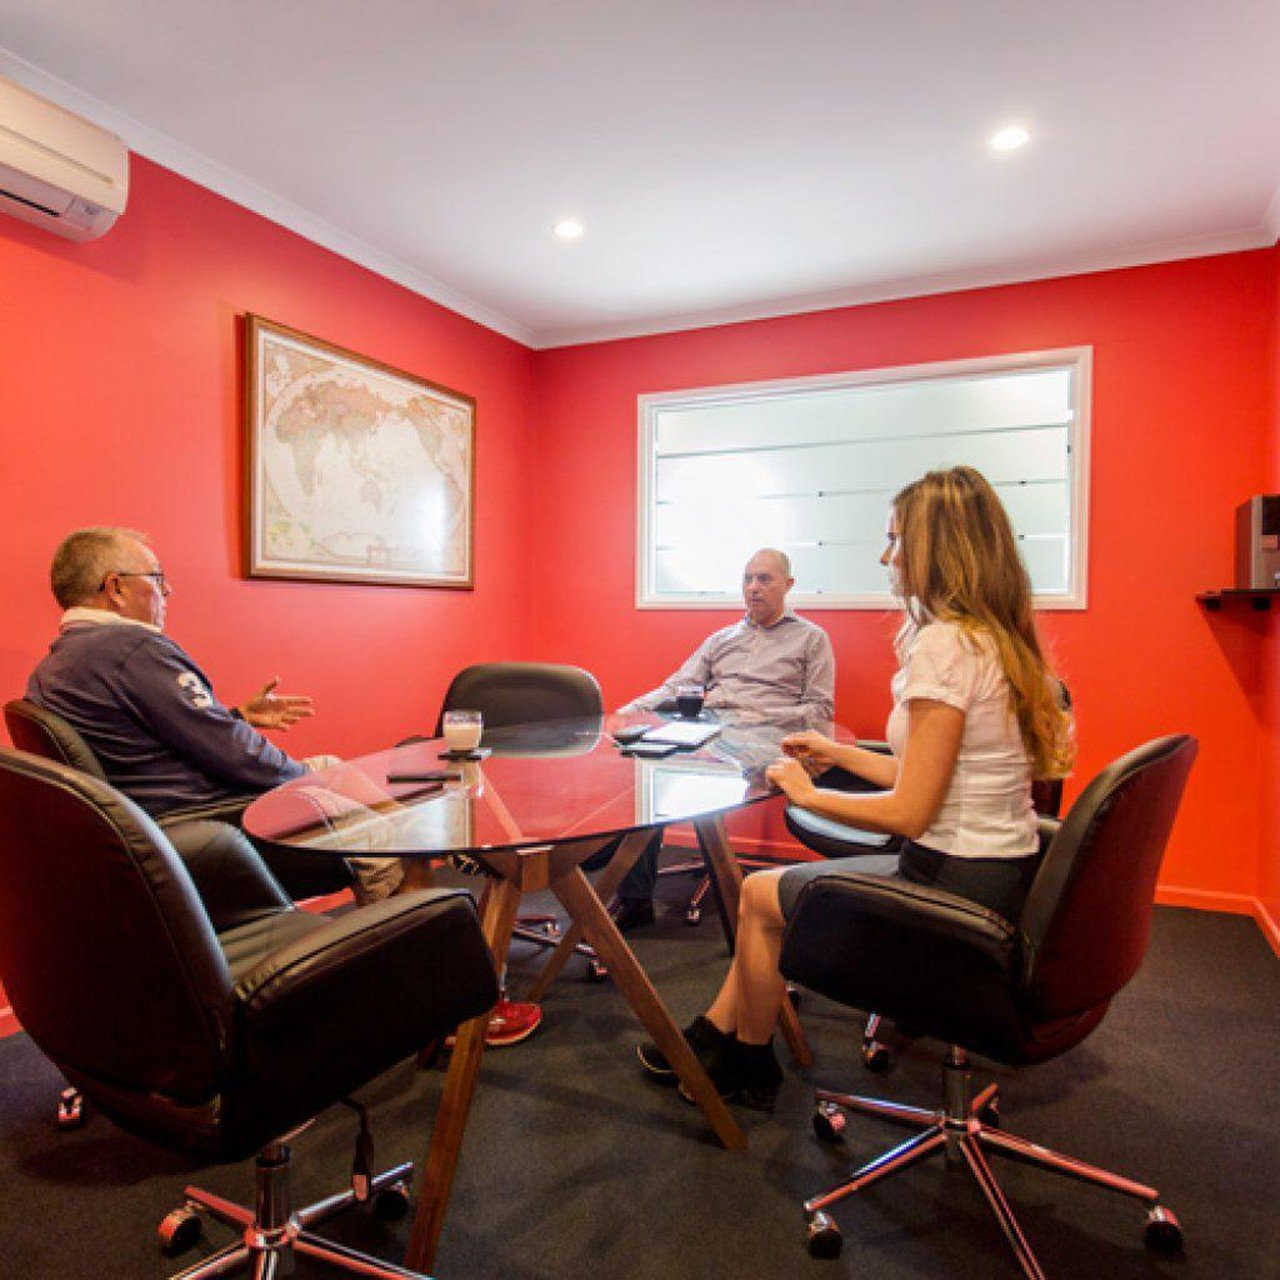 Brisbane conference rooms Meetingraum Scarborough Business Centre - Red Meeting Room image 0